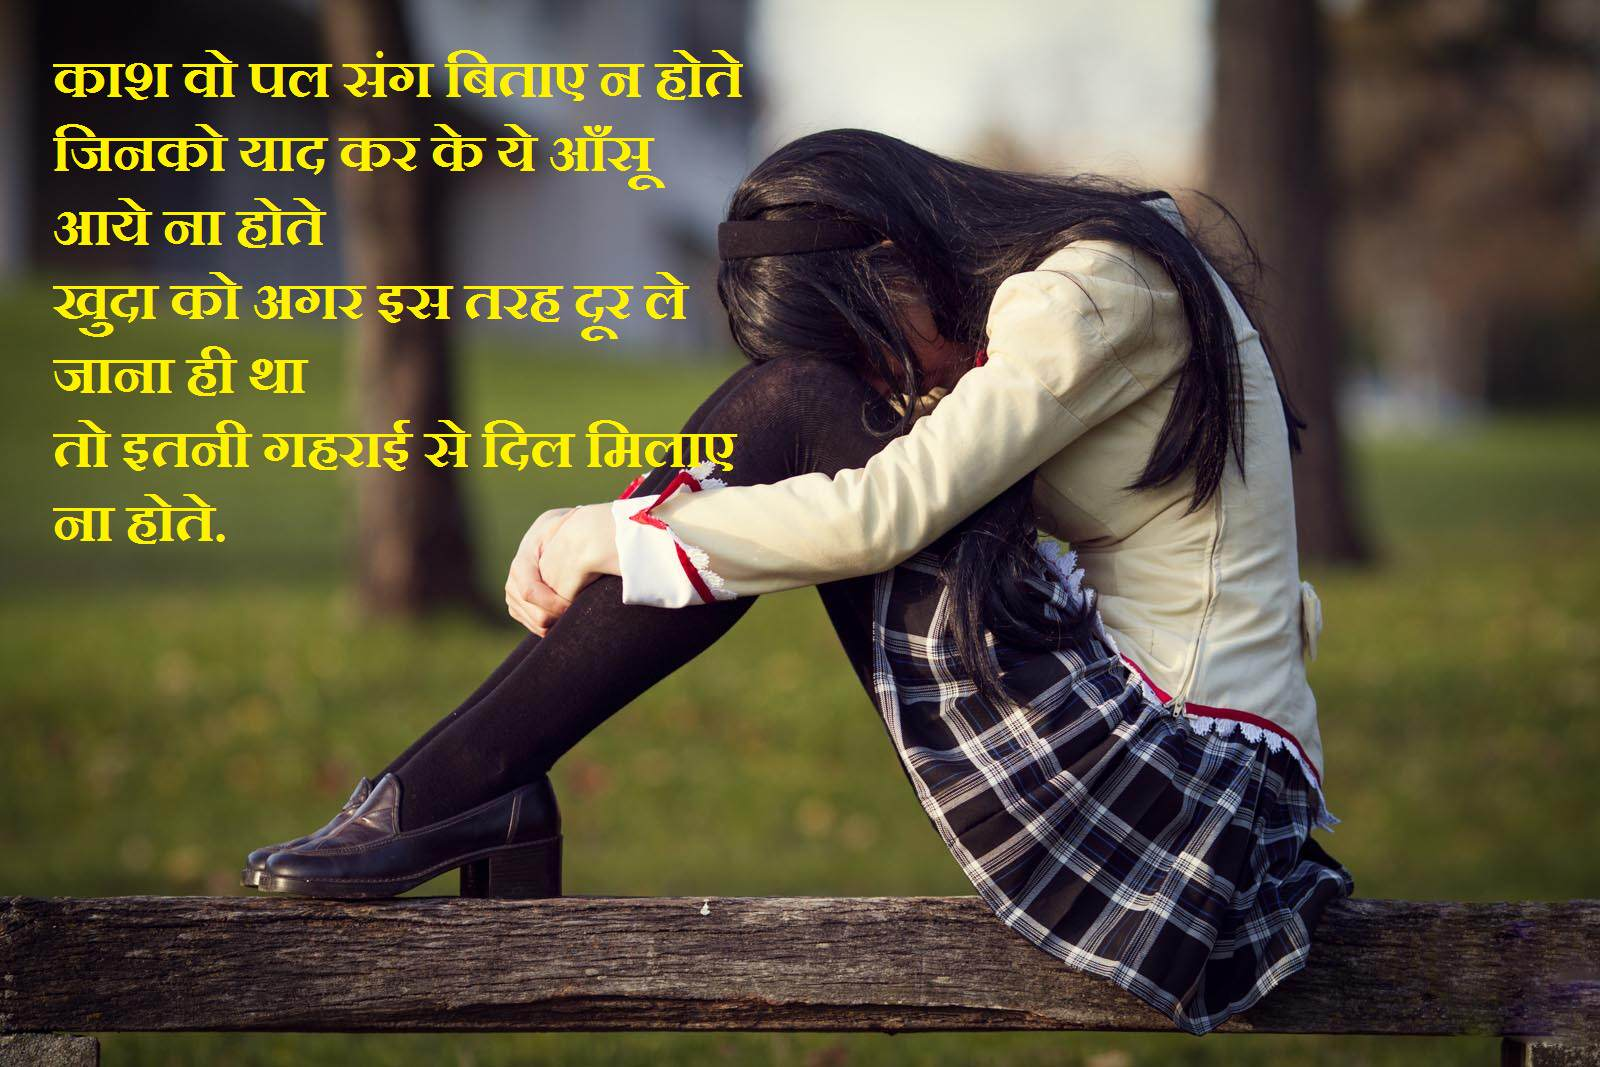 Love Boy Sms Wallpaper : Shayari Urdu Images,urdu shayari with picture,urdu shayari ...